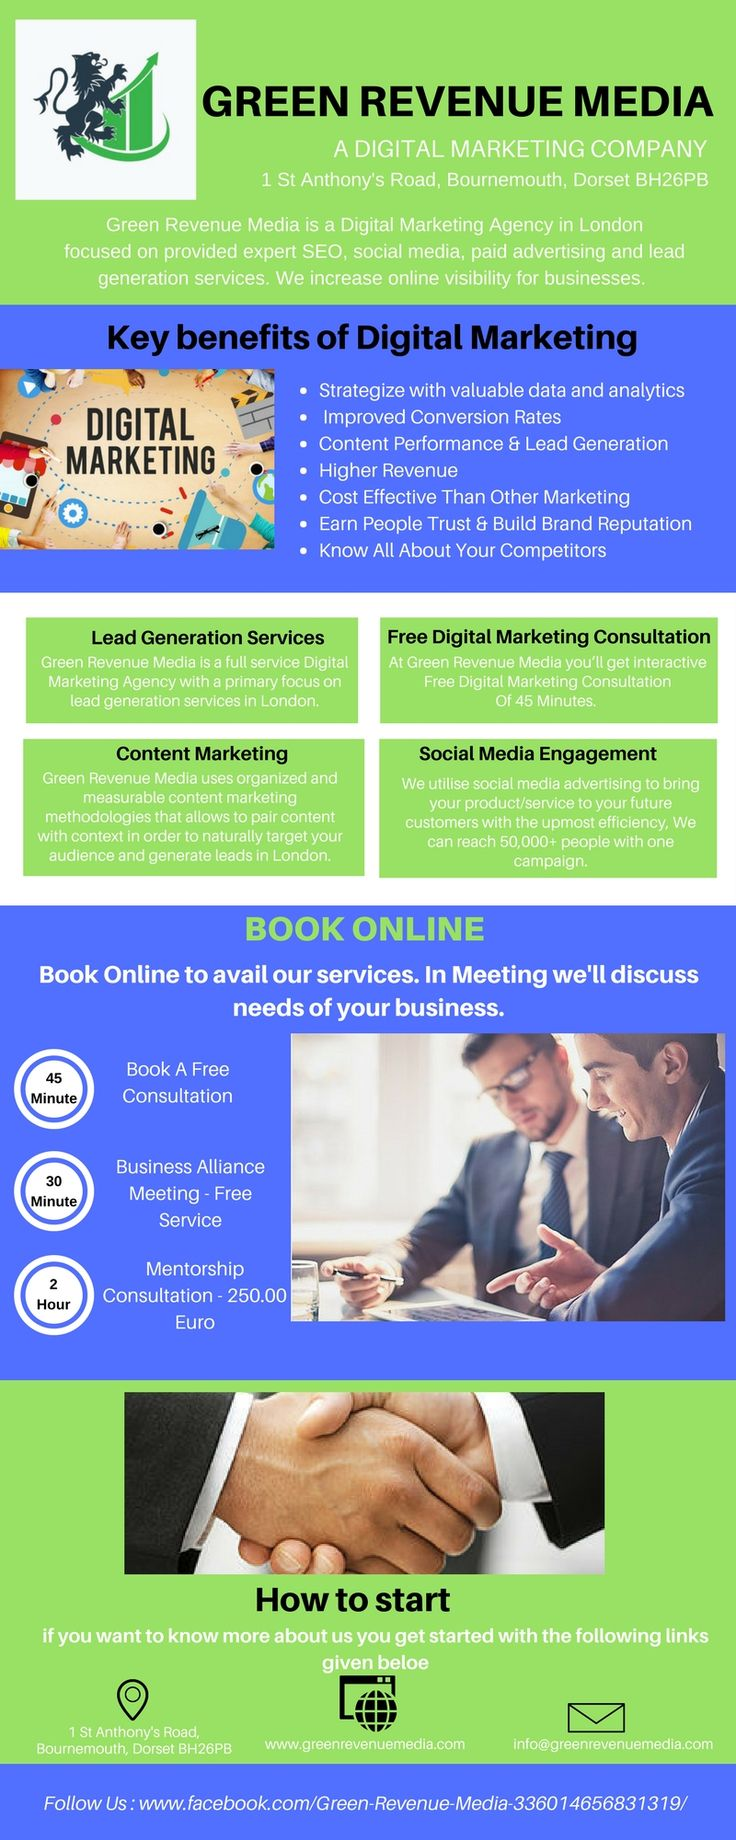 Green Revenue Media provides Lead Generation Services in London, UK. Our consistent lead generation services help b2b and b2c businesses attain their ROI goals. Here we offer cost-effectual lead generation service that will be tailored according to your business and help you make best use of your marketing budget for optimum performance.